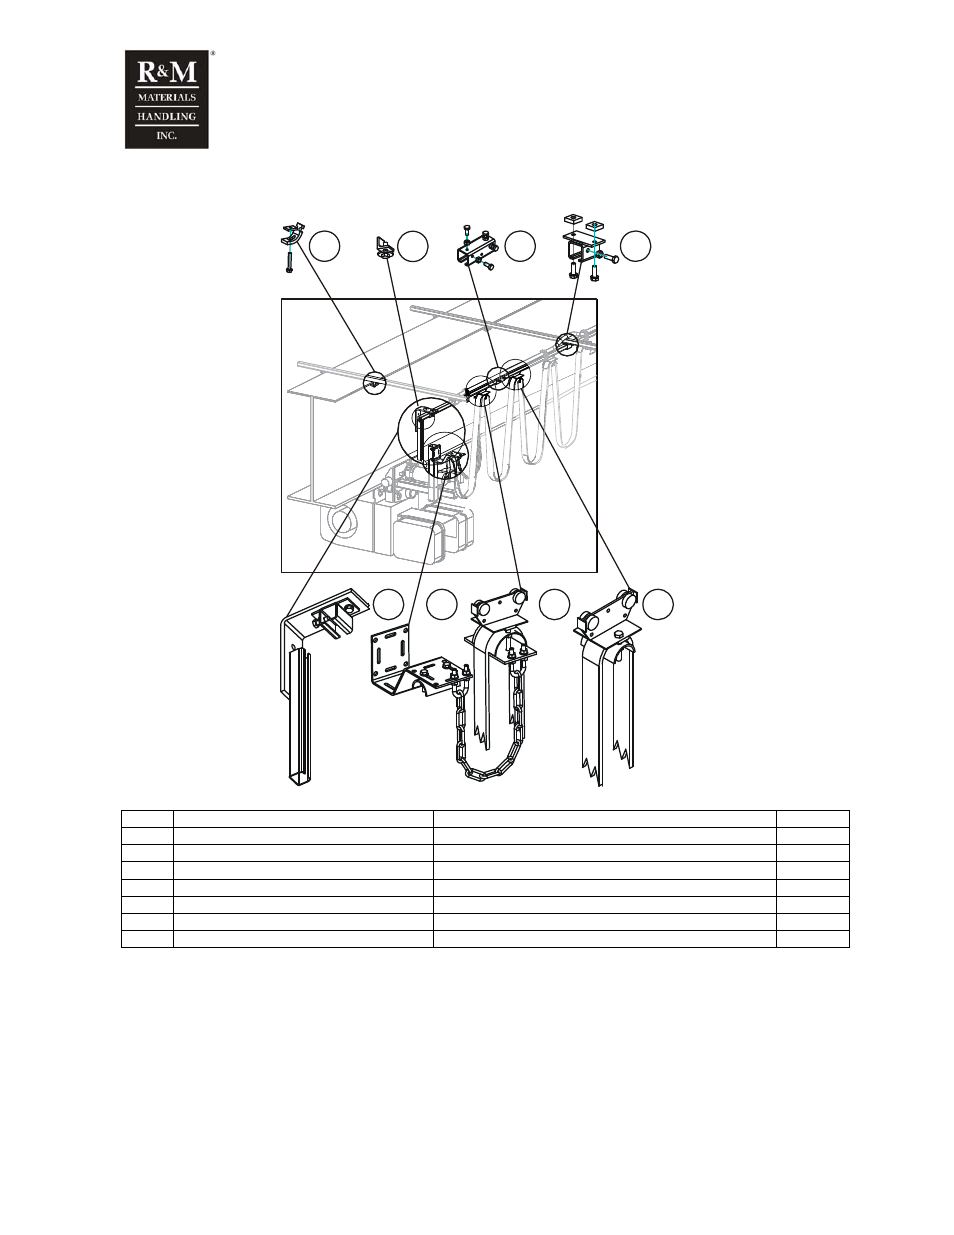 R&M Materials Handling WIRE ROPE PACKAGES User Manual   Page 18 / 76